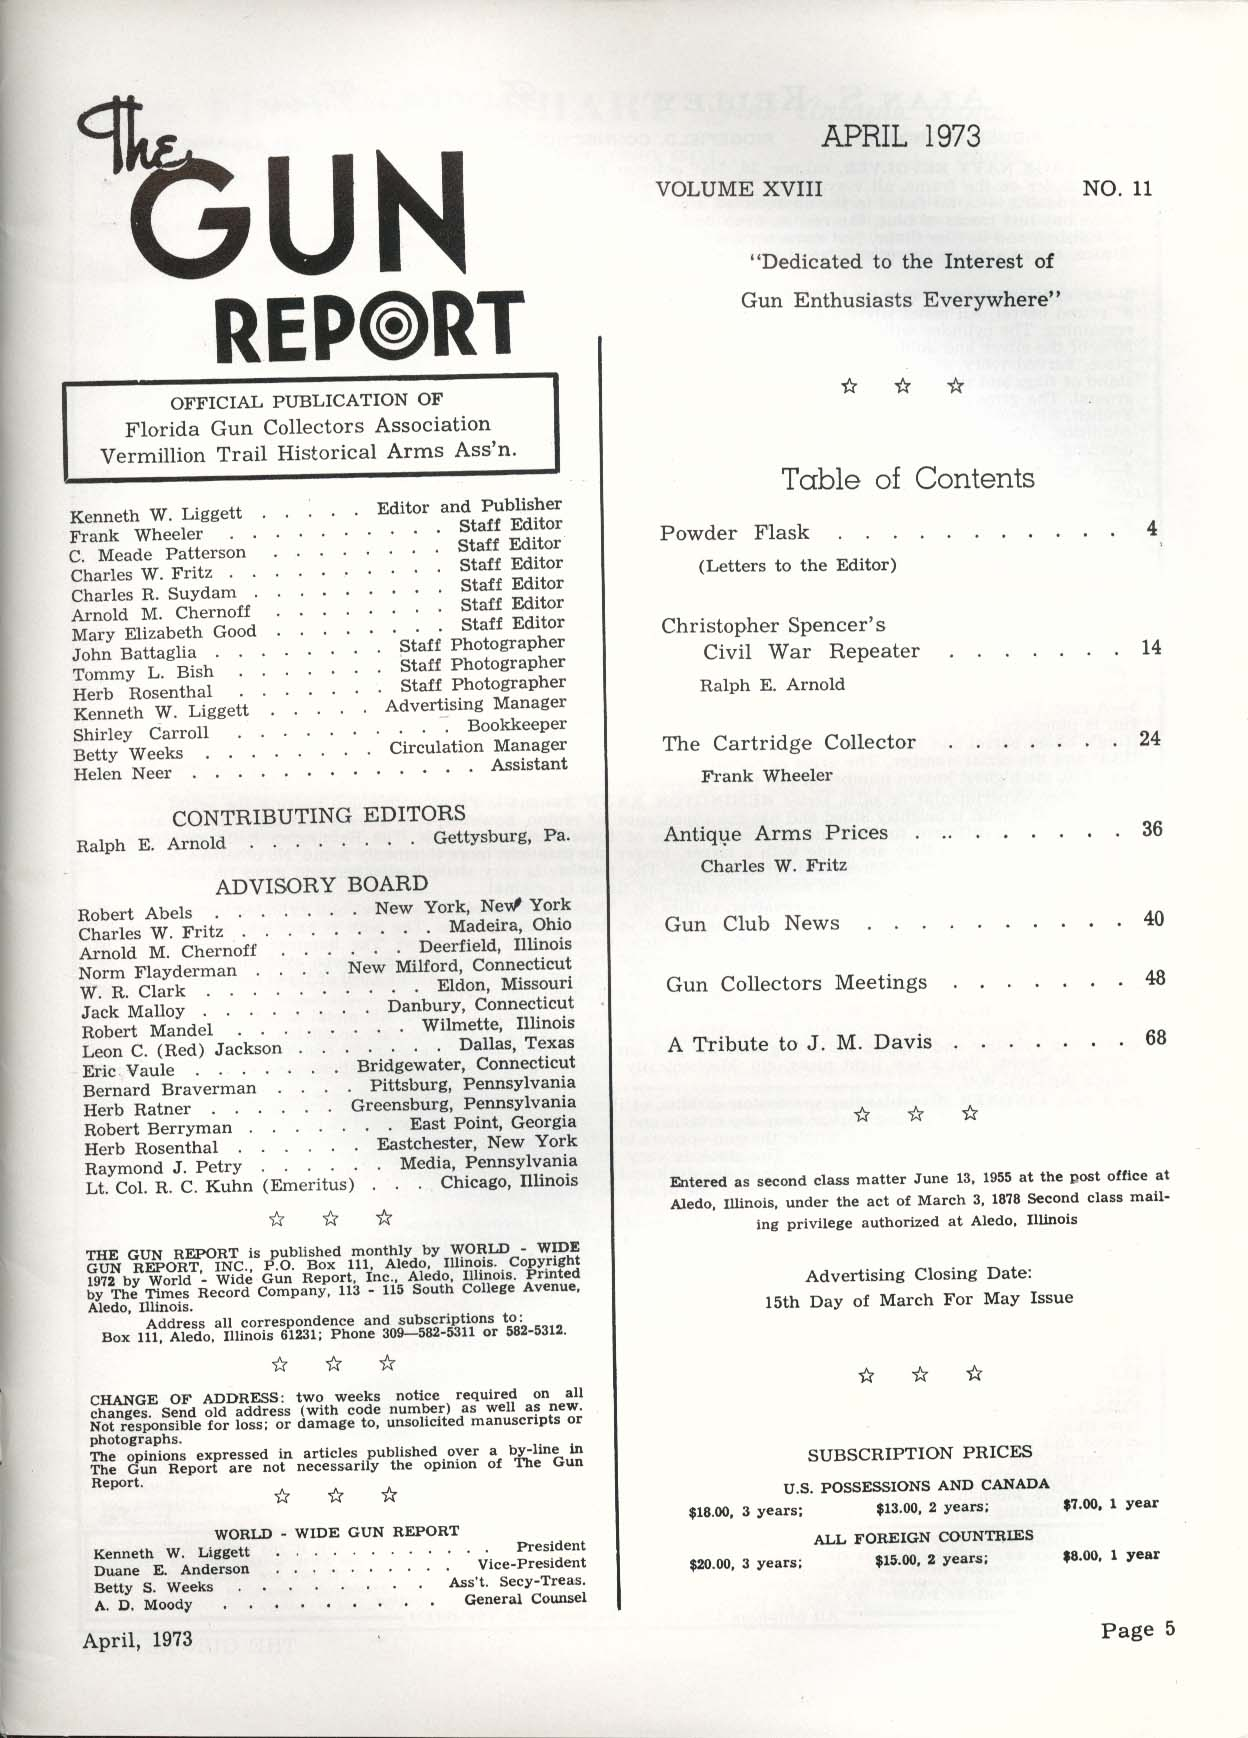 GUN REPORT Christopher Spencer Civil War Navy Repeater 4 1973